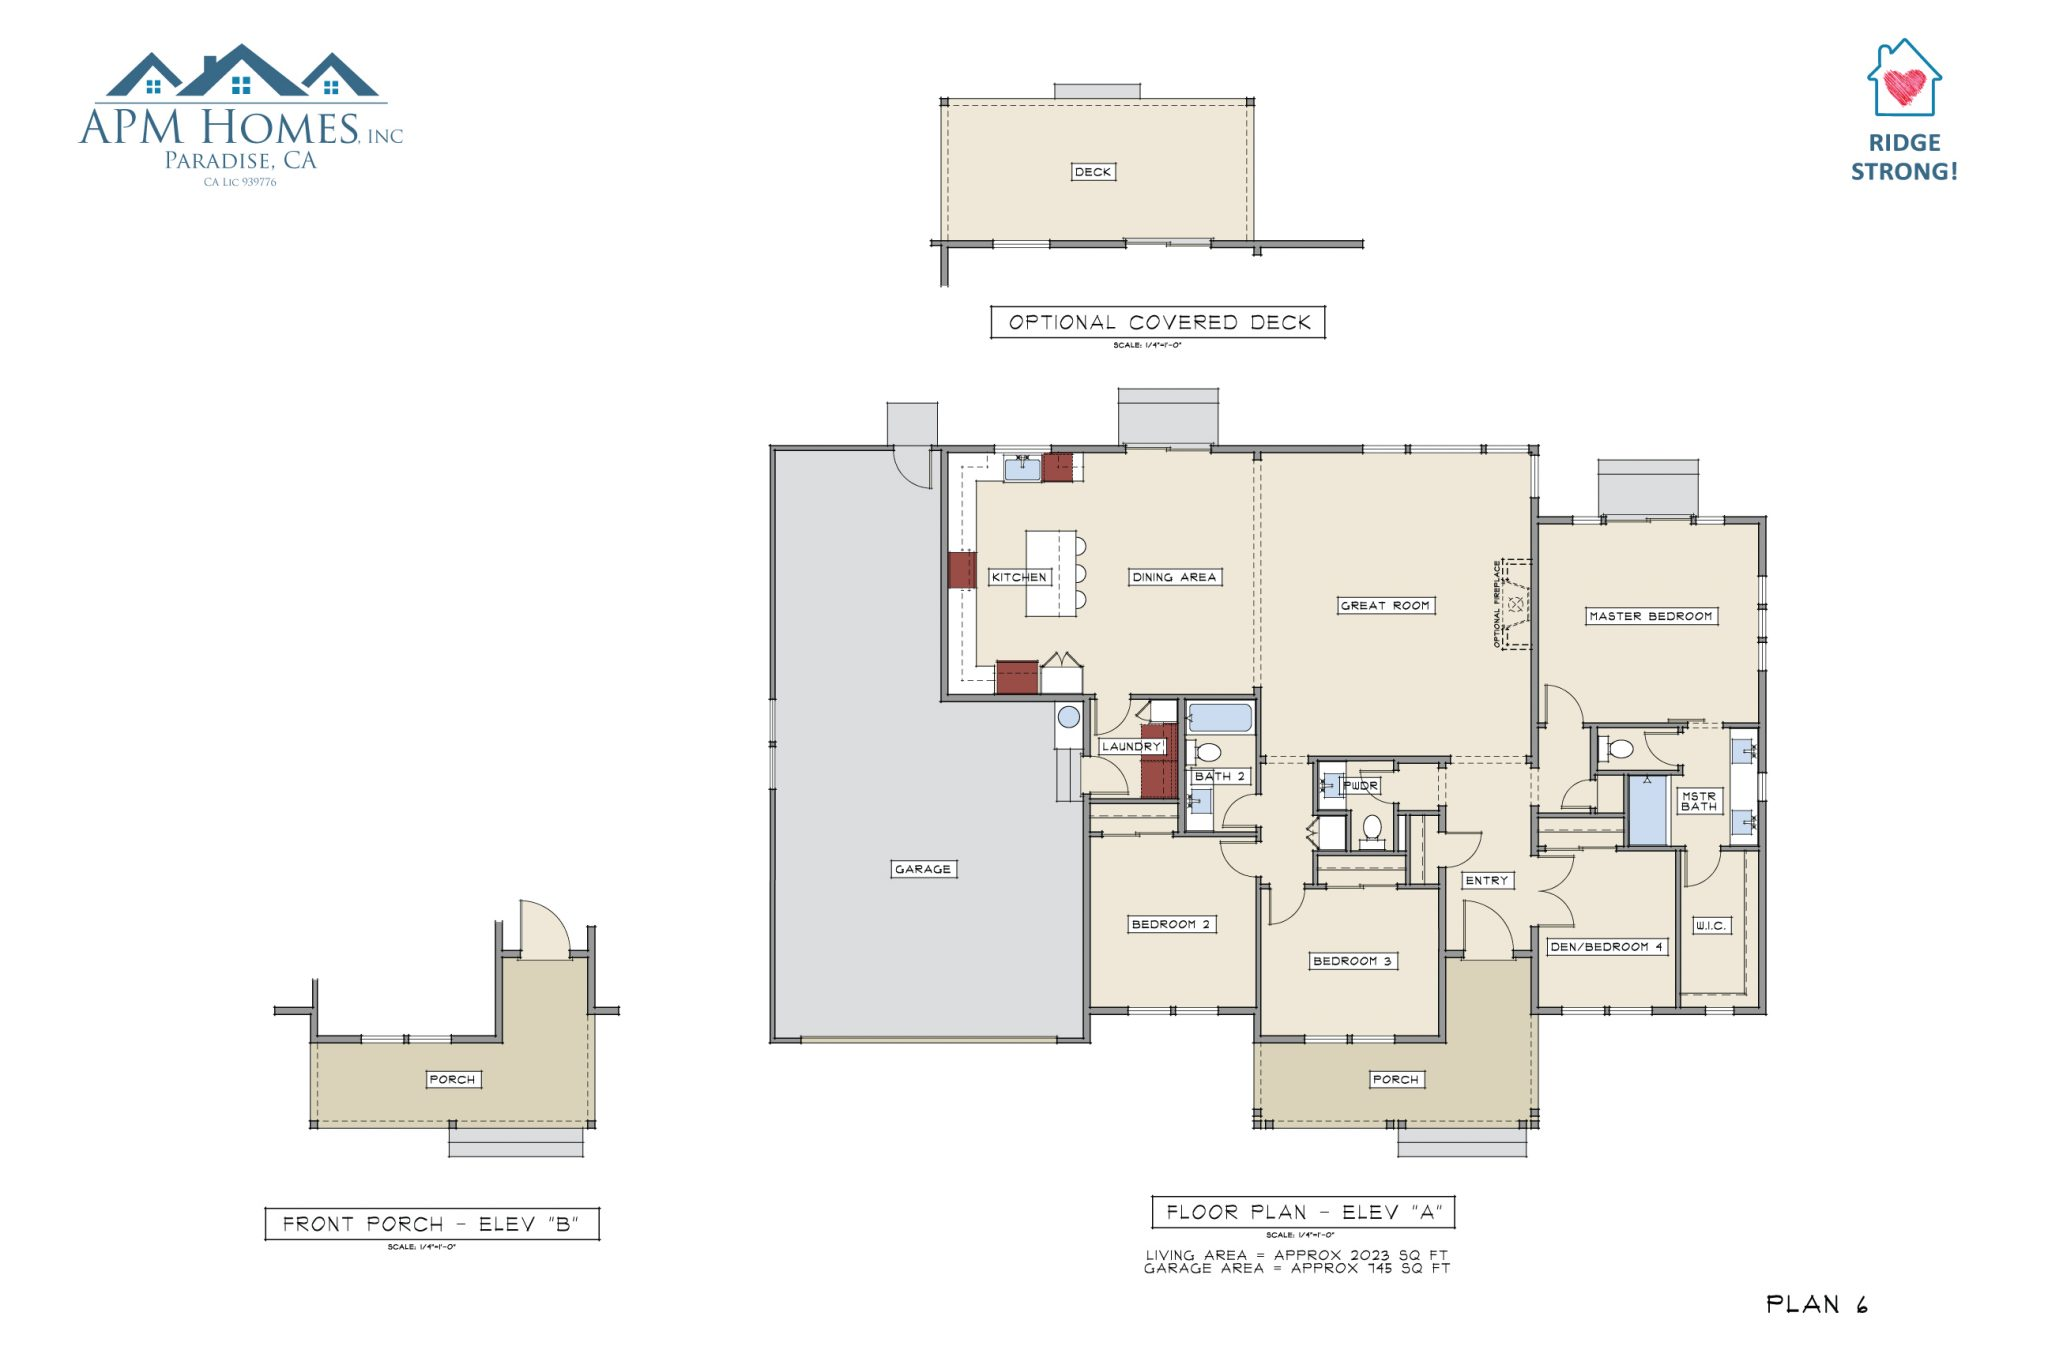 APM Homes , Inc - Example of coloring done to make home floor plans more visually appealing